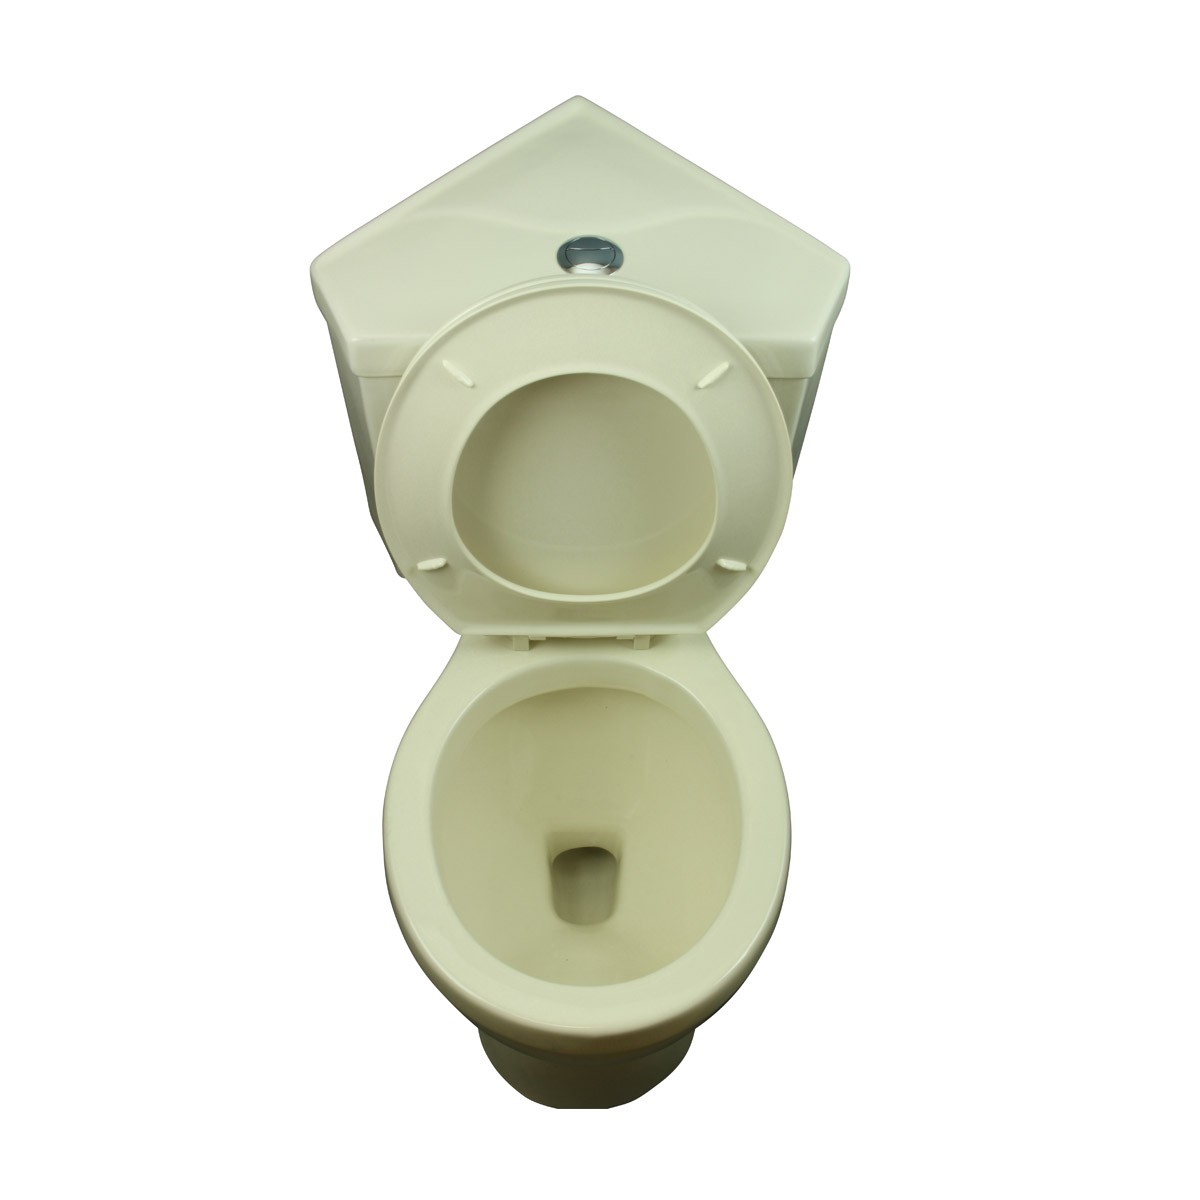 Outstanding Biscuit Round Bowl Corner Bathroom Toilet Push Button Dual Flush Water Saver Beatyapartments Chair Design Images Beatyapartmentscom